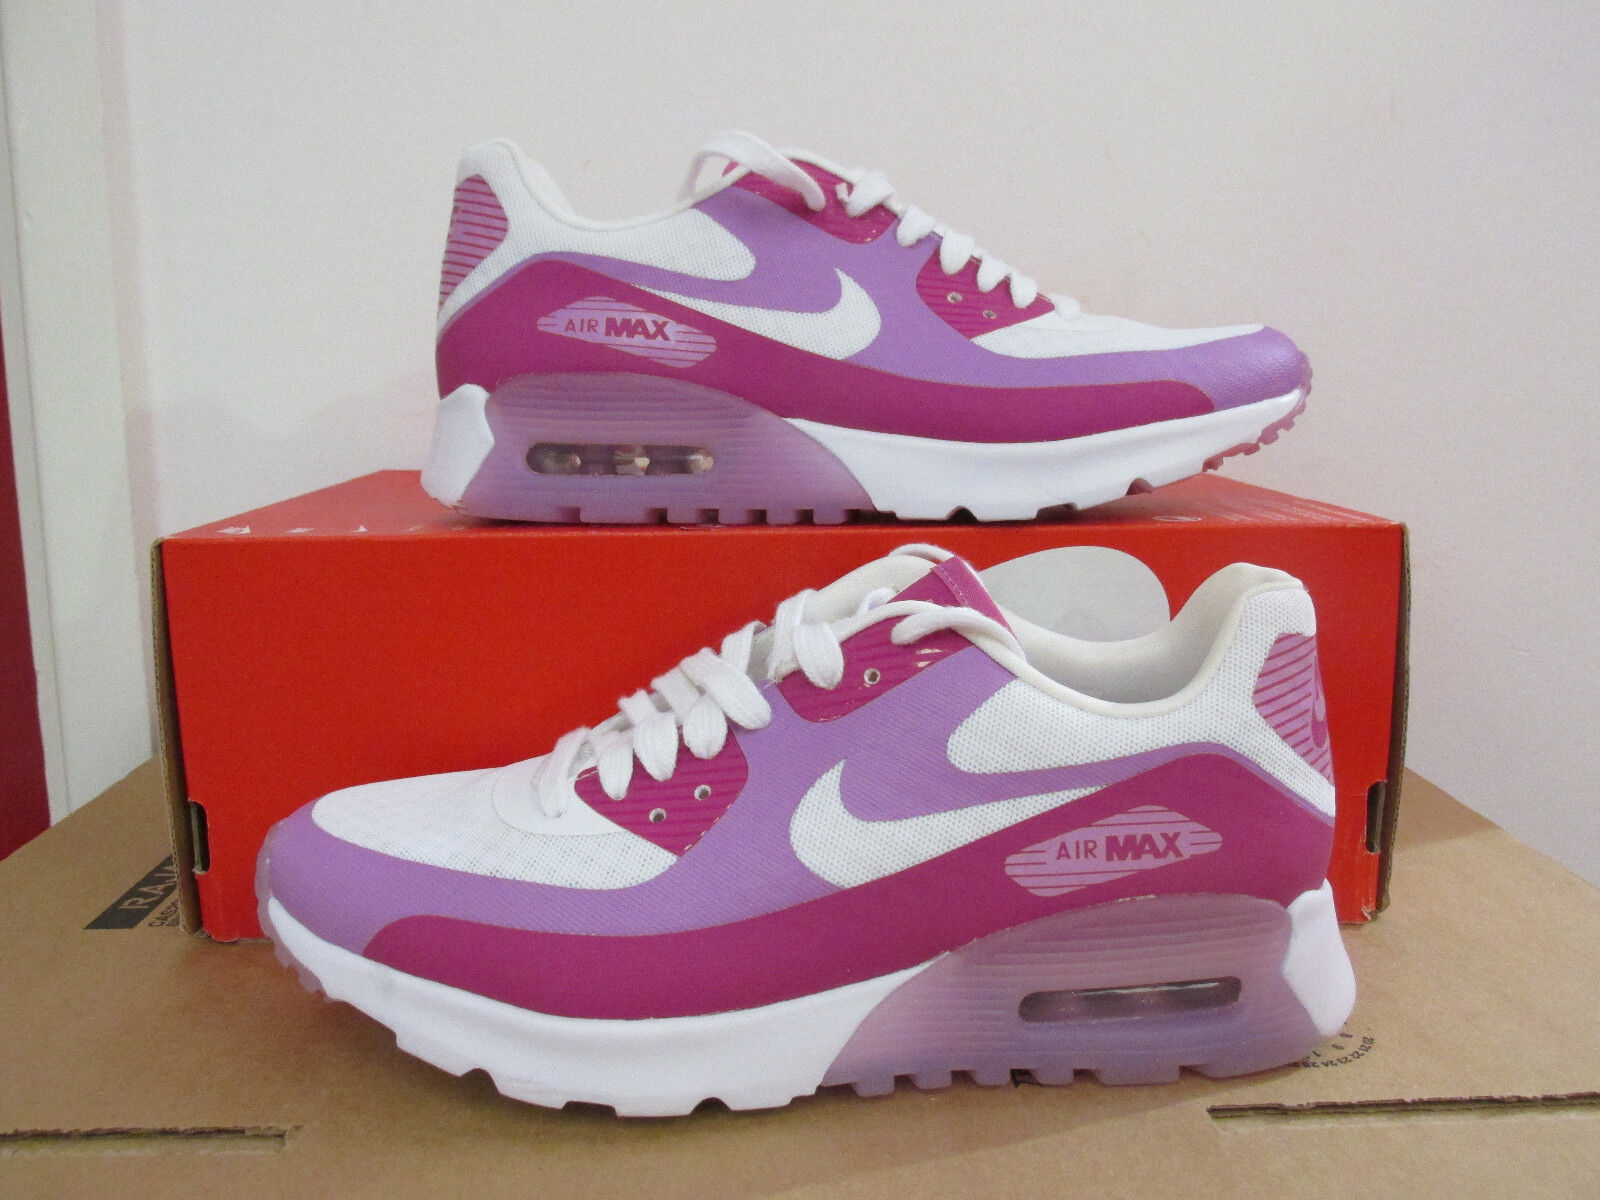 Nike womens air max 90 ultra BR running trainers 725061 102 sneakers CLEARANCE